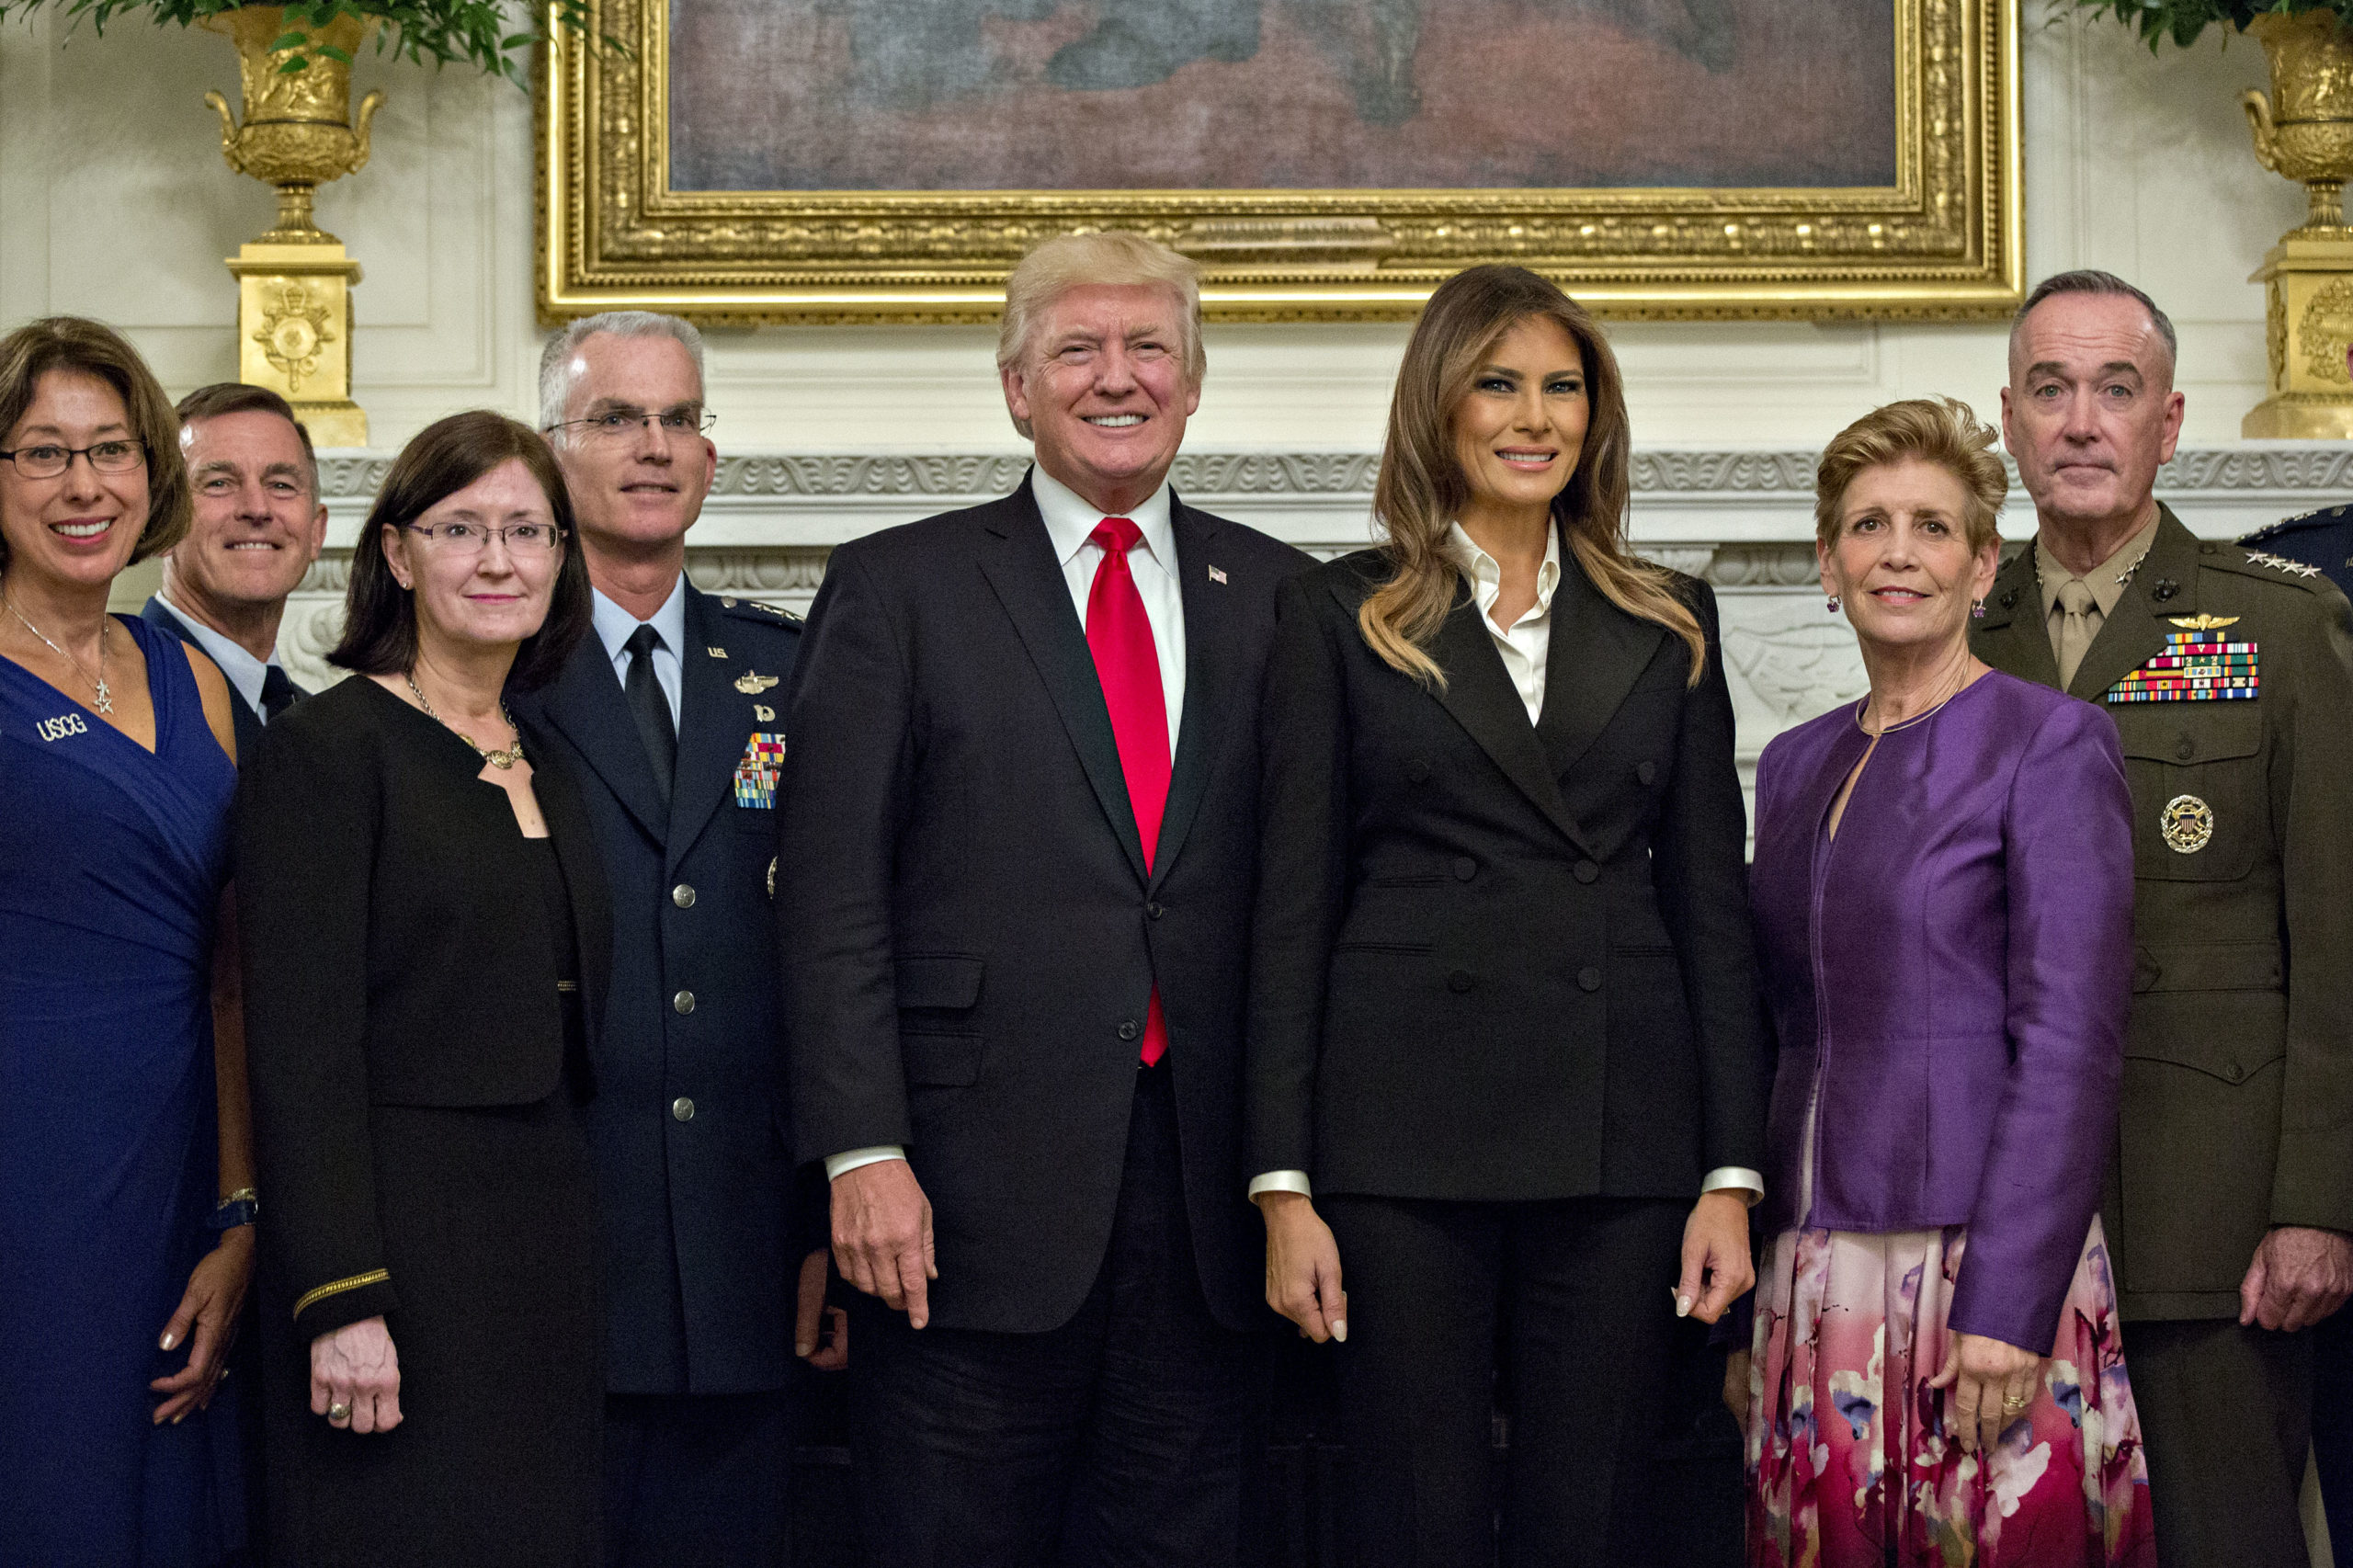 WASHINGTON, DC - OCTOBER 5: U.S. President Donald Trump and first lady Melania Trump pose for pictures with senior military leaders and spouses, including including Gen. Joseph Dunford (R), chairman of the joint chiefs of staff, and General Paul Selva (4th L), vice chairman of the joint chiefs of staff, after a briefing in the State Dining Room of the White House October 5, 2017 in Washington, D.C. The Trumps are hosting the group for a dinner in the Blue Room. (Photo by Andrew Harrer-Pool/Getty Images)